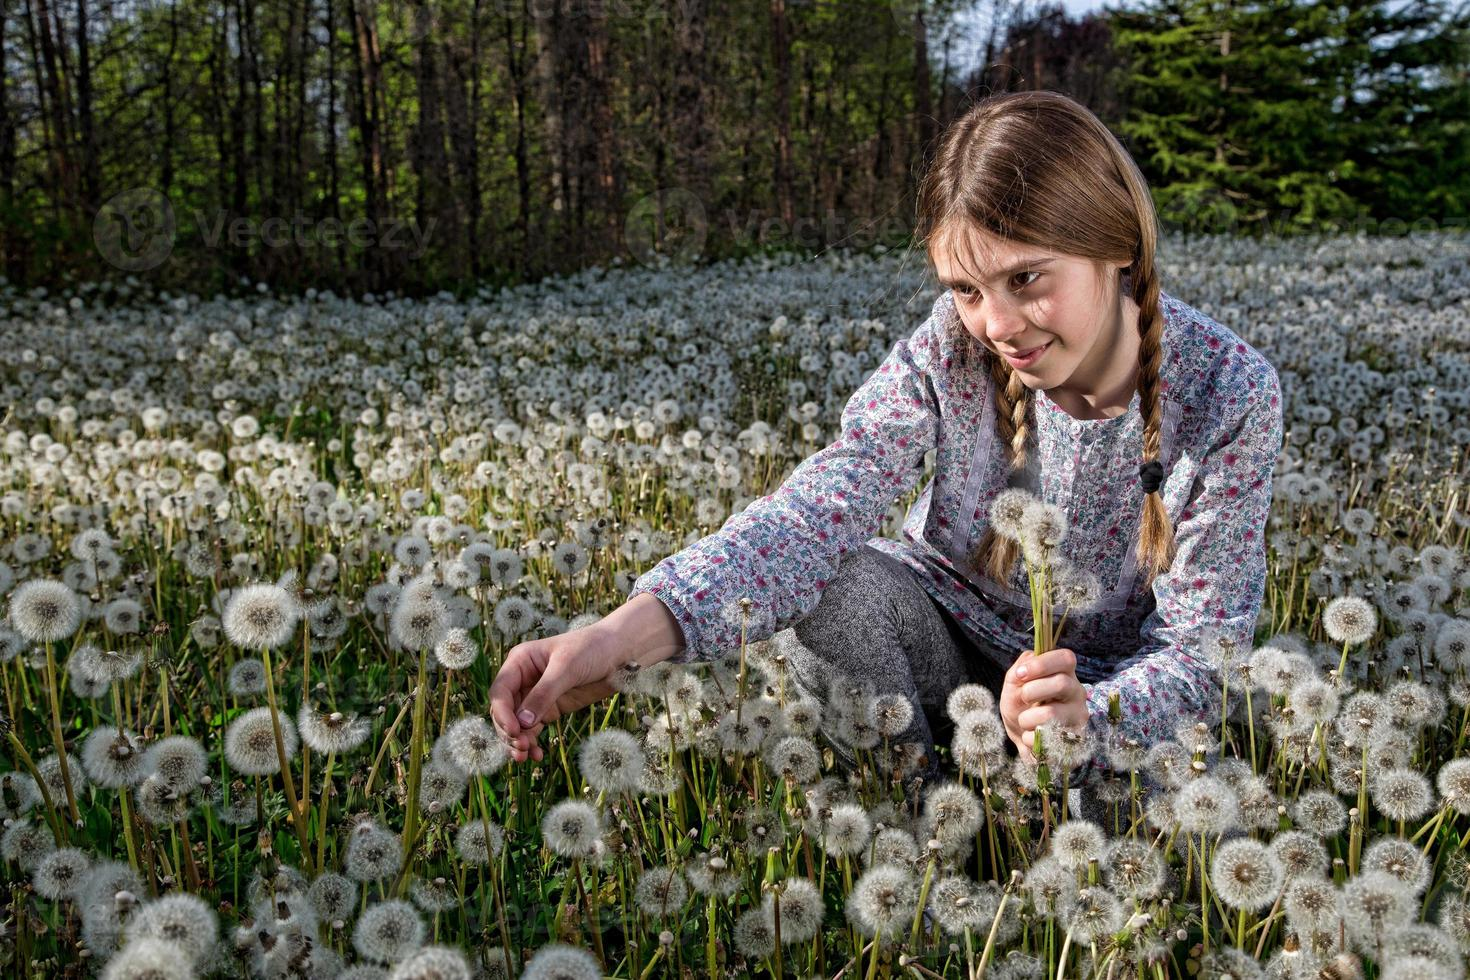 Lovely Girl With Dandelions Enjoying the Beauty of Spring Nature photo